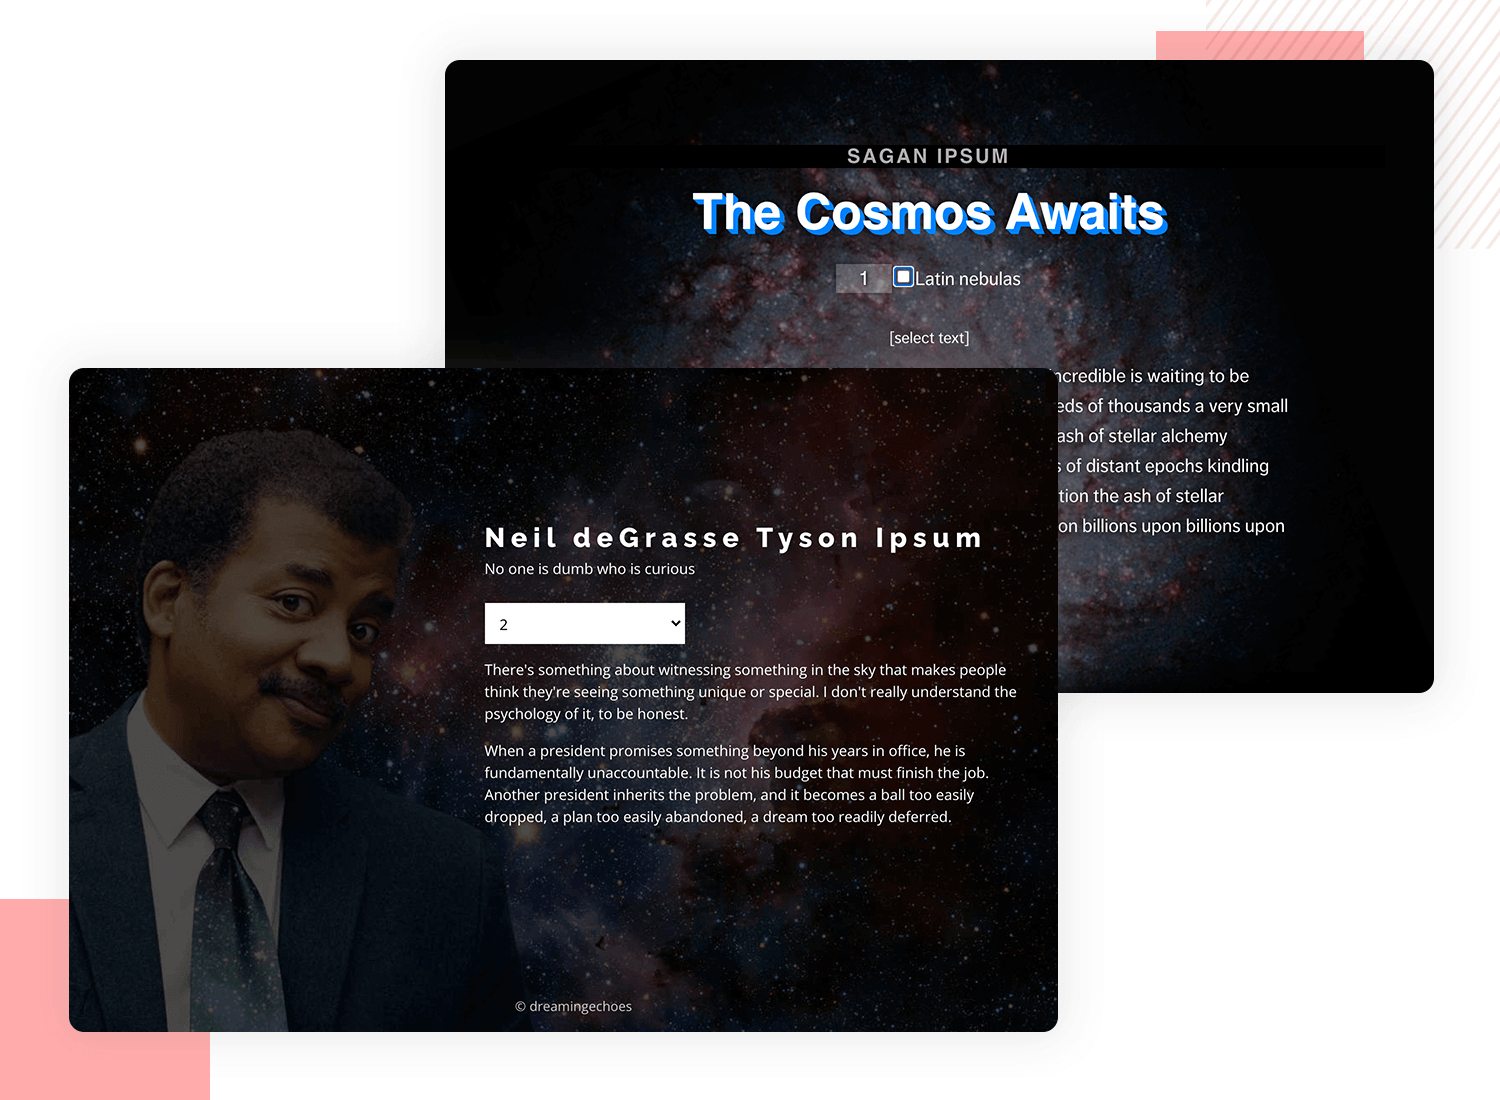 lorem ipsum alternatives - cosmic talk generator (Sagan and Tyson)